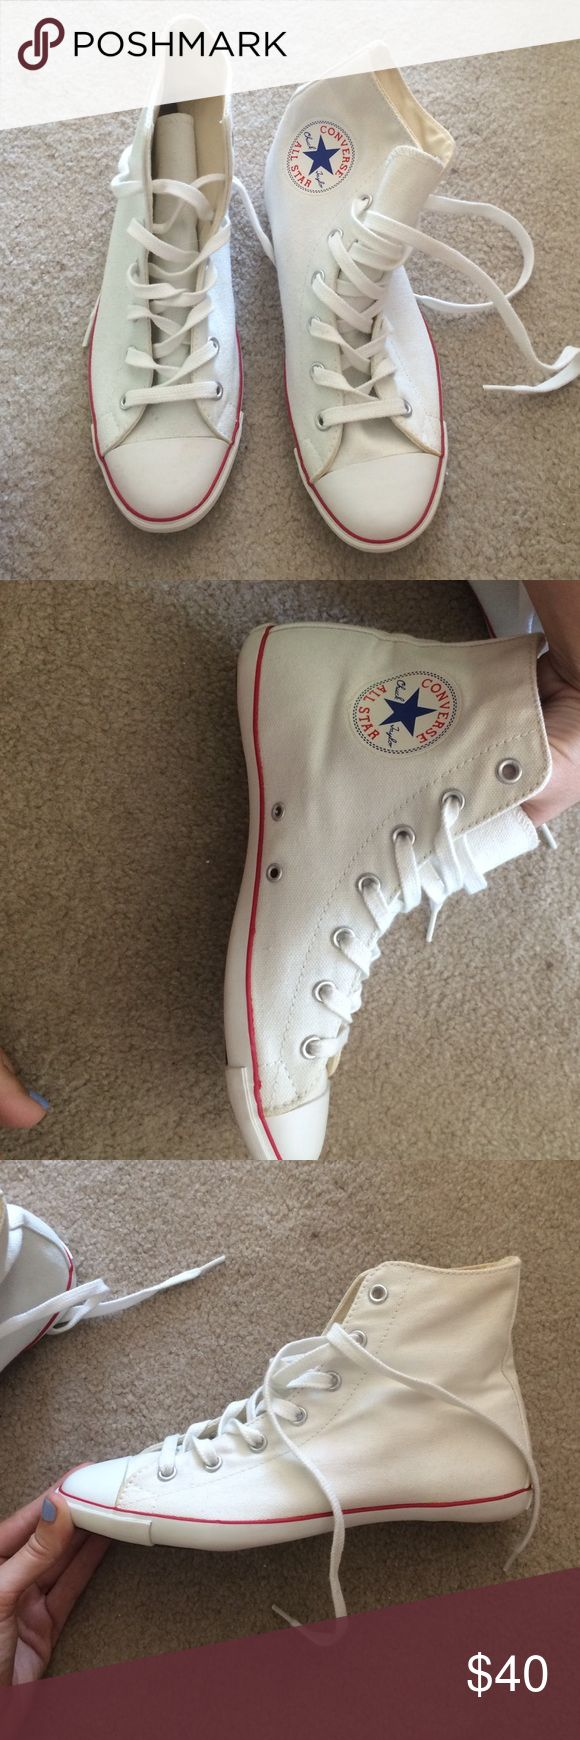 White Hi-top Converse Slim Sole Never worn Converse Shoes Sneakers